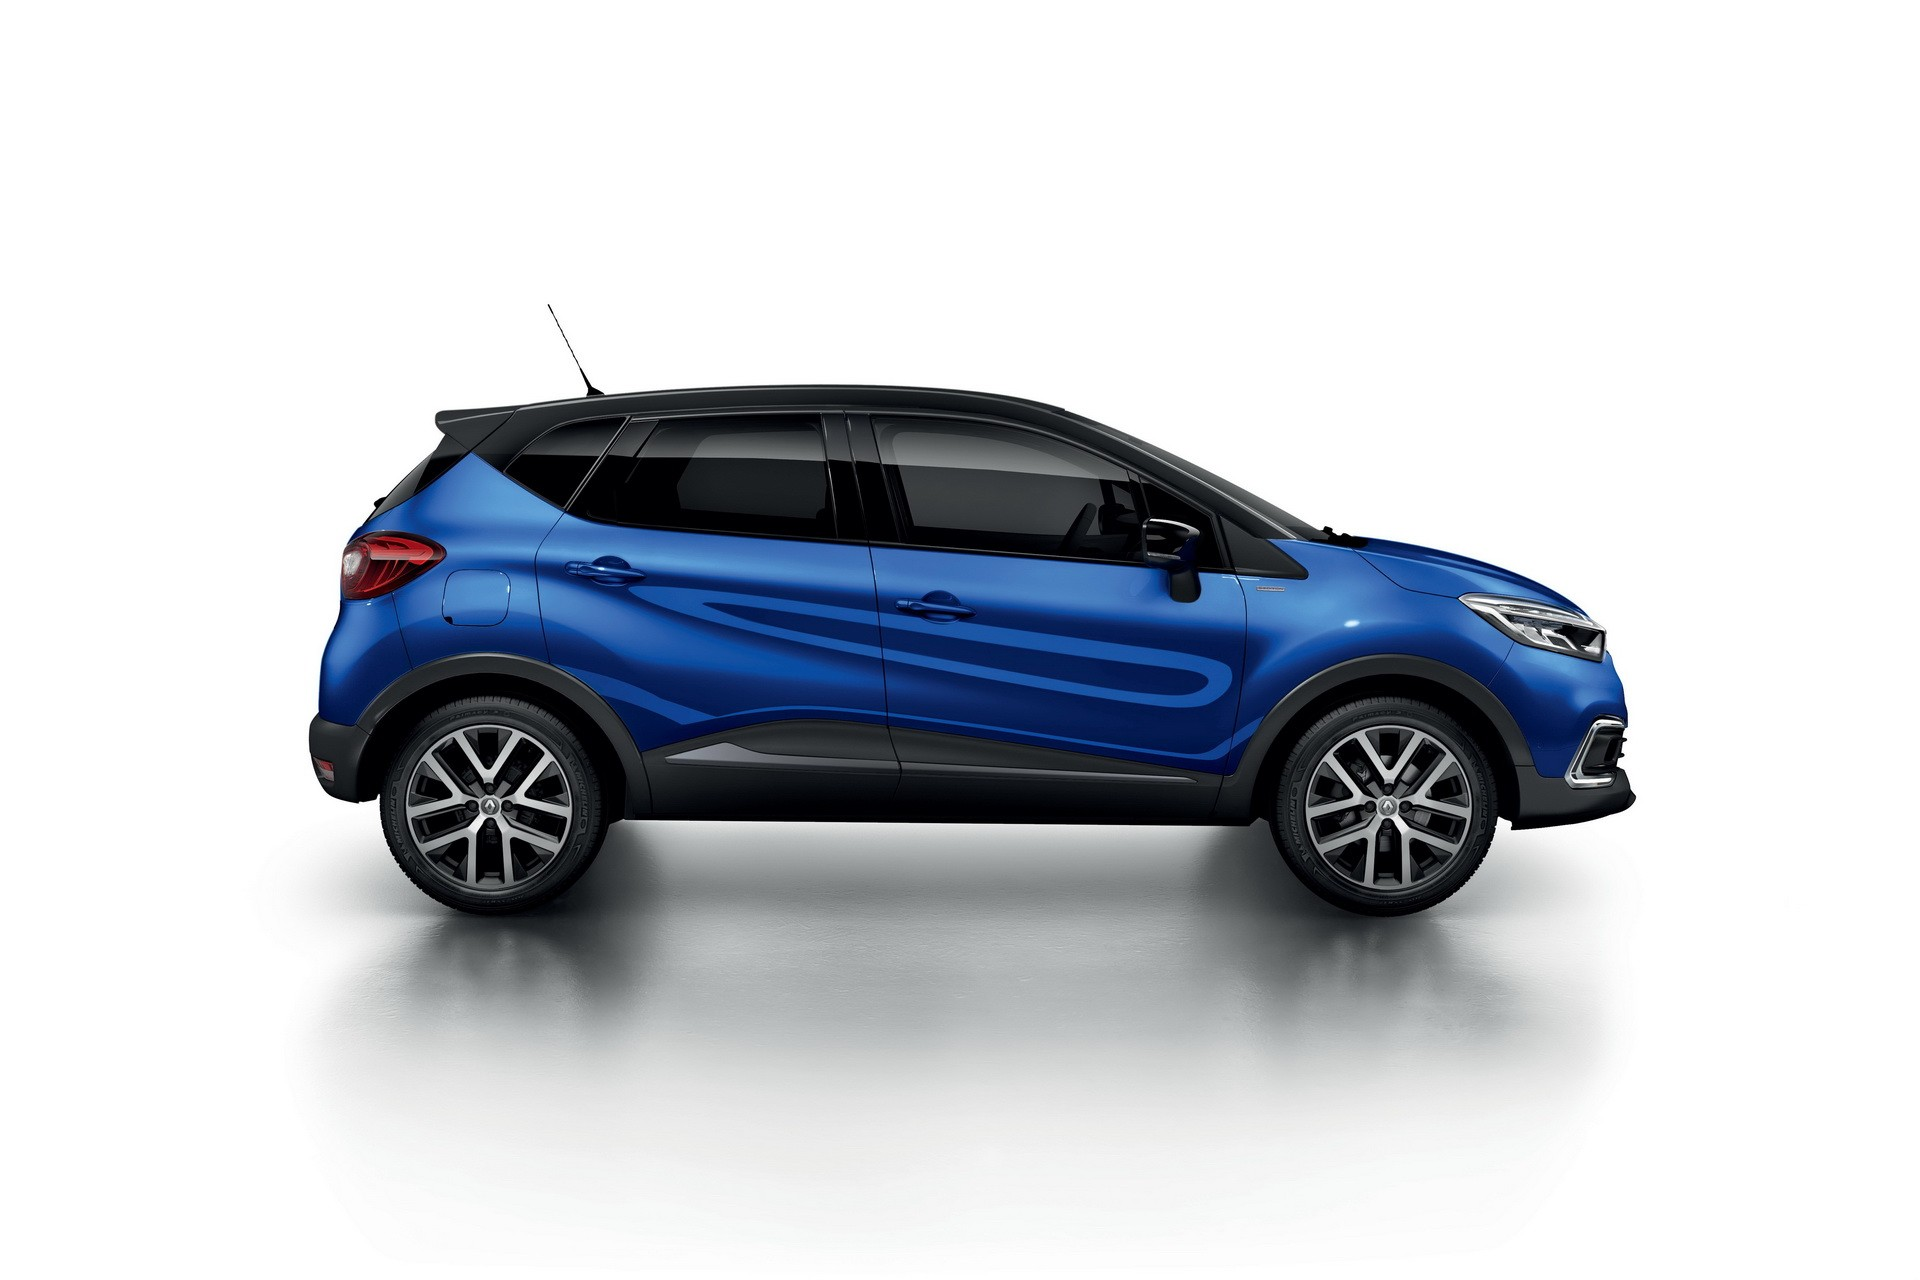 renault captur s edition gets 150 hp from new turbo engine. Black Bedroom Furniture Sets. Home Design Ideas